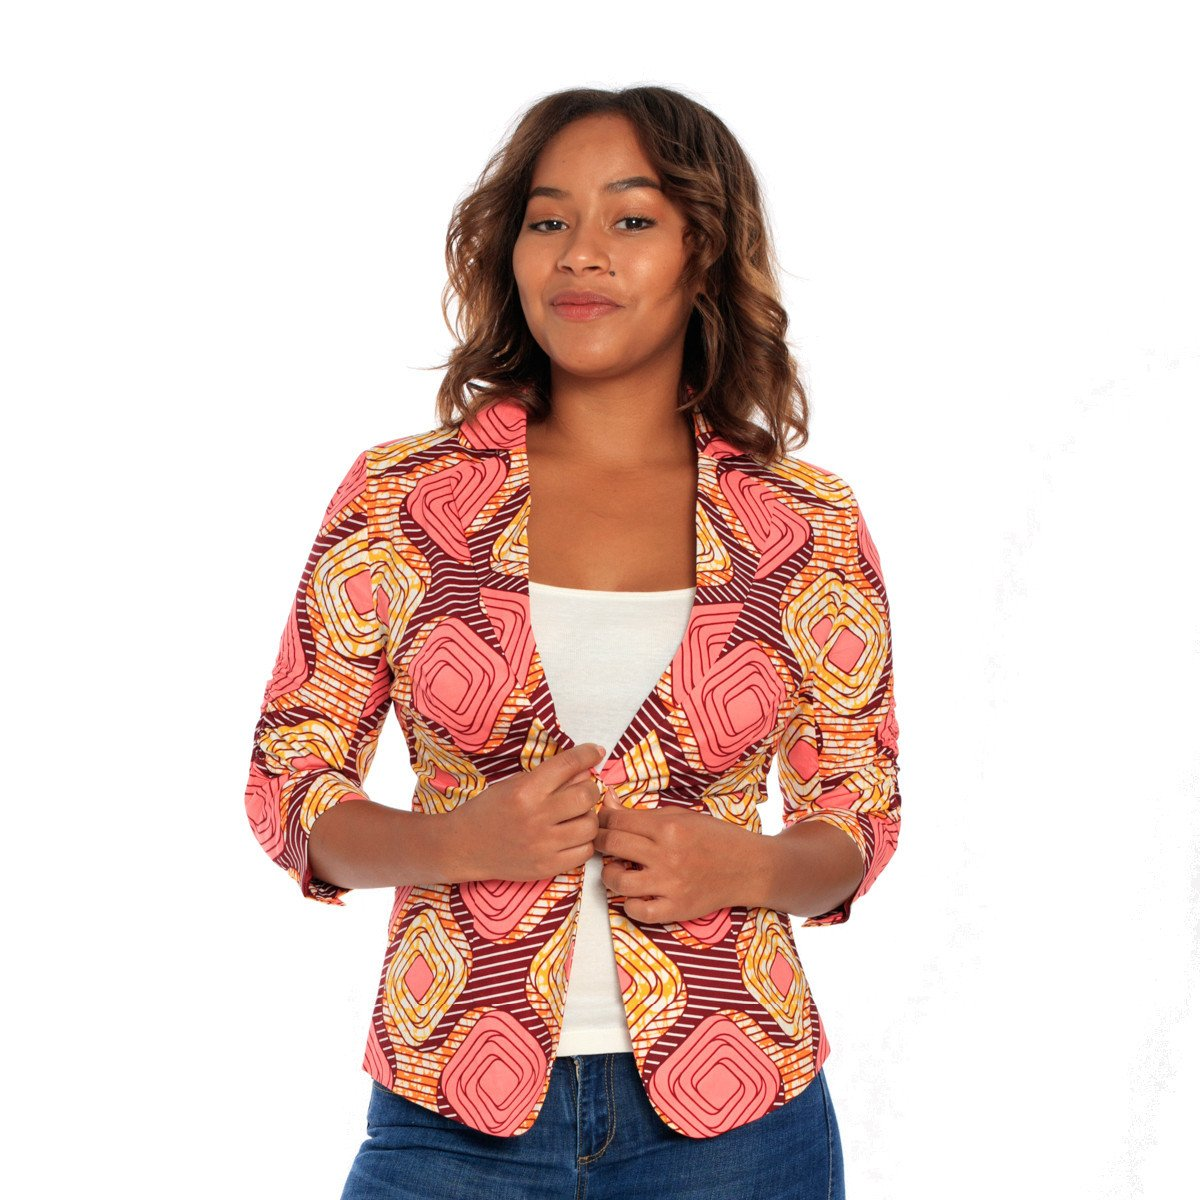 The Pink Ankara Jacket